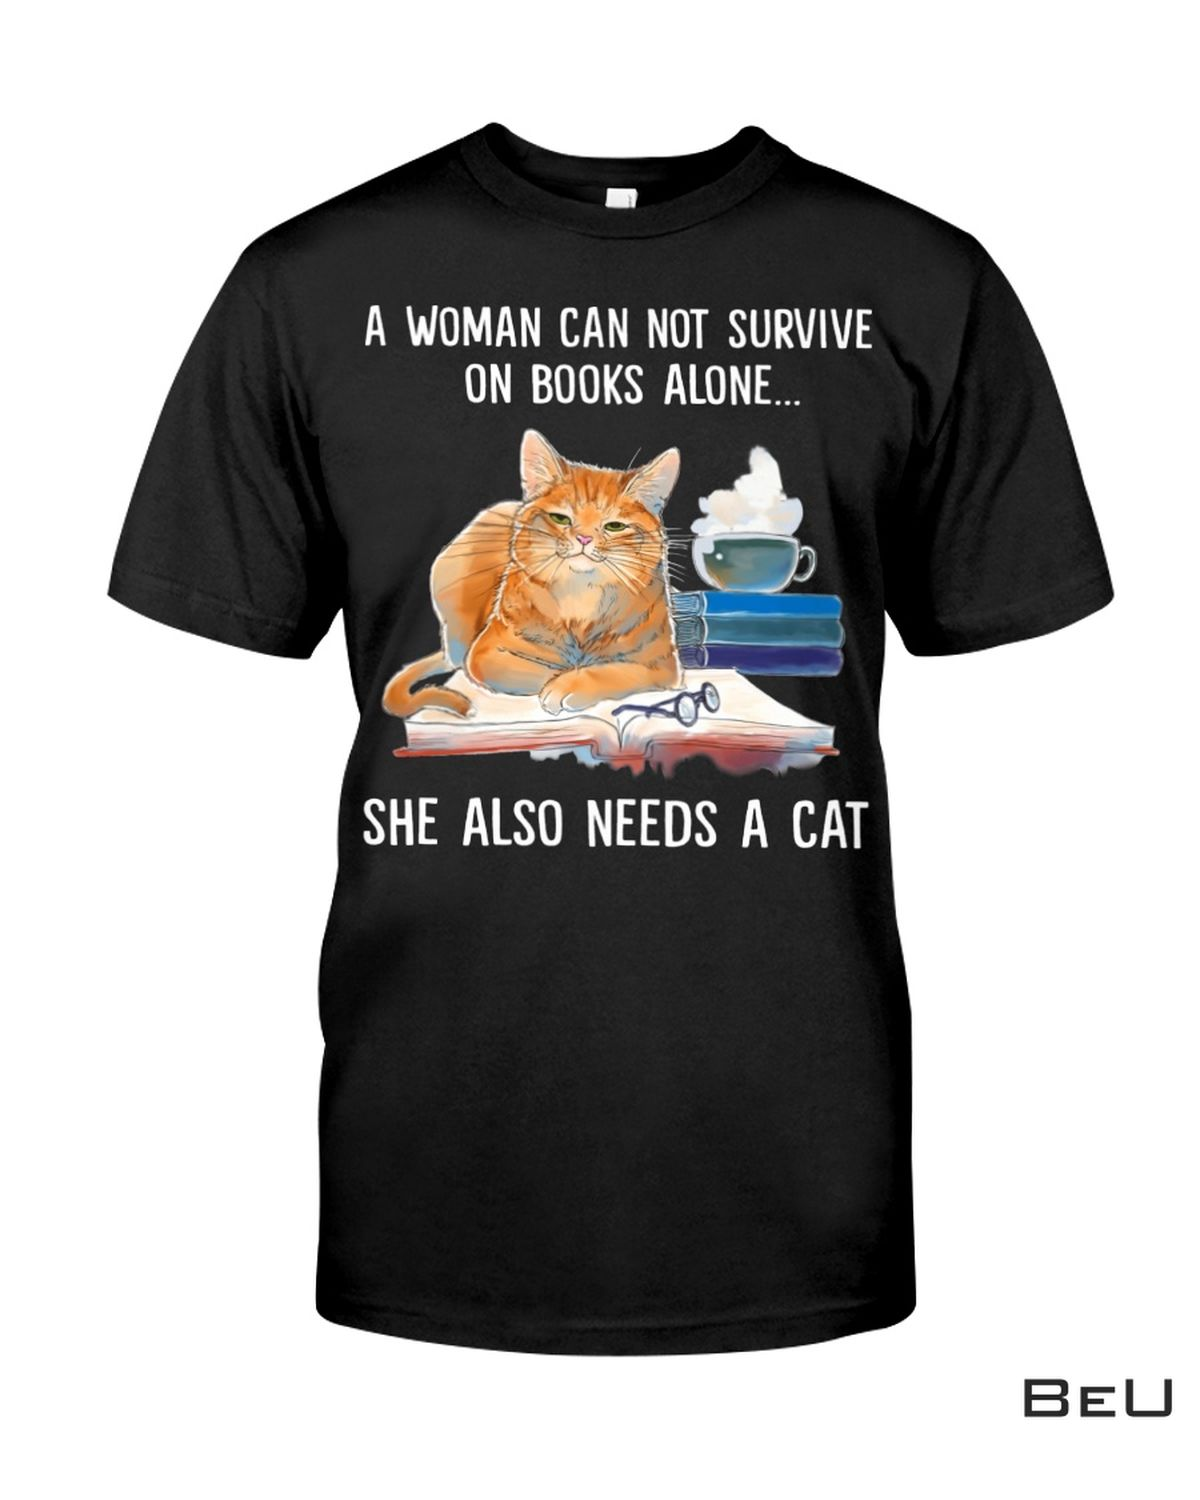 Best Gift A Woman Can Not Survive On Books Alone She Also Needs A Cat Shirt, hoodie, tank top